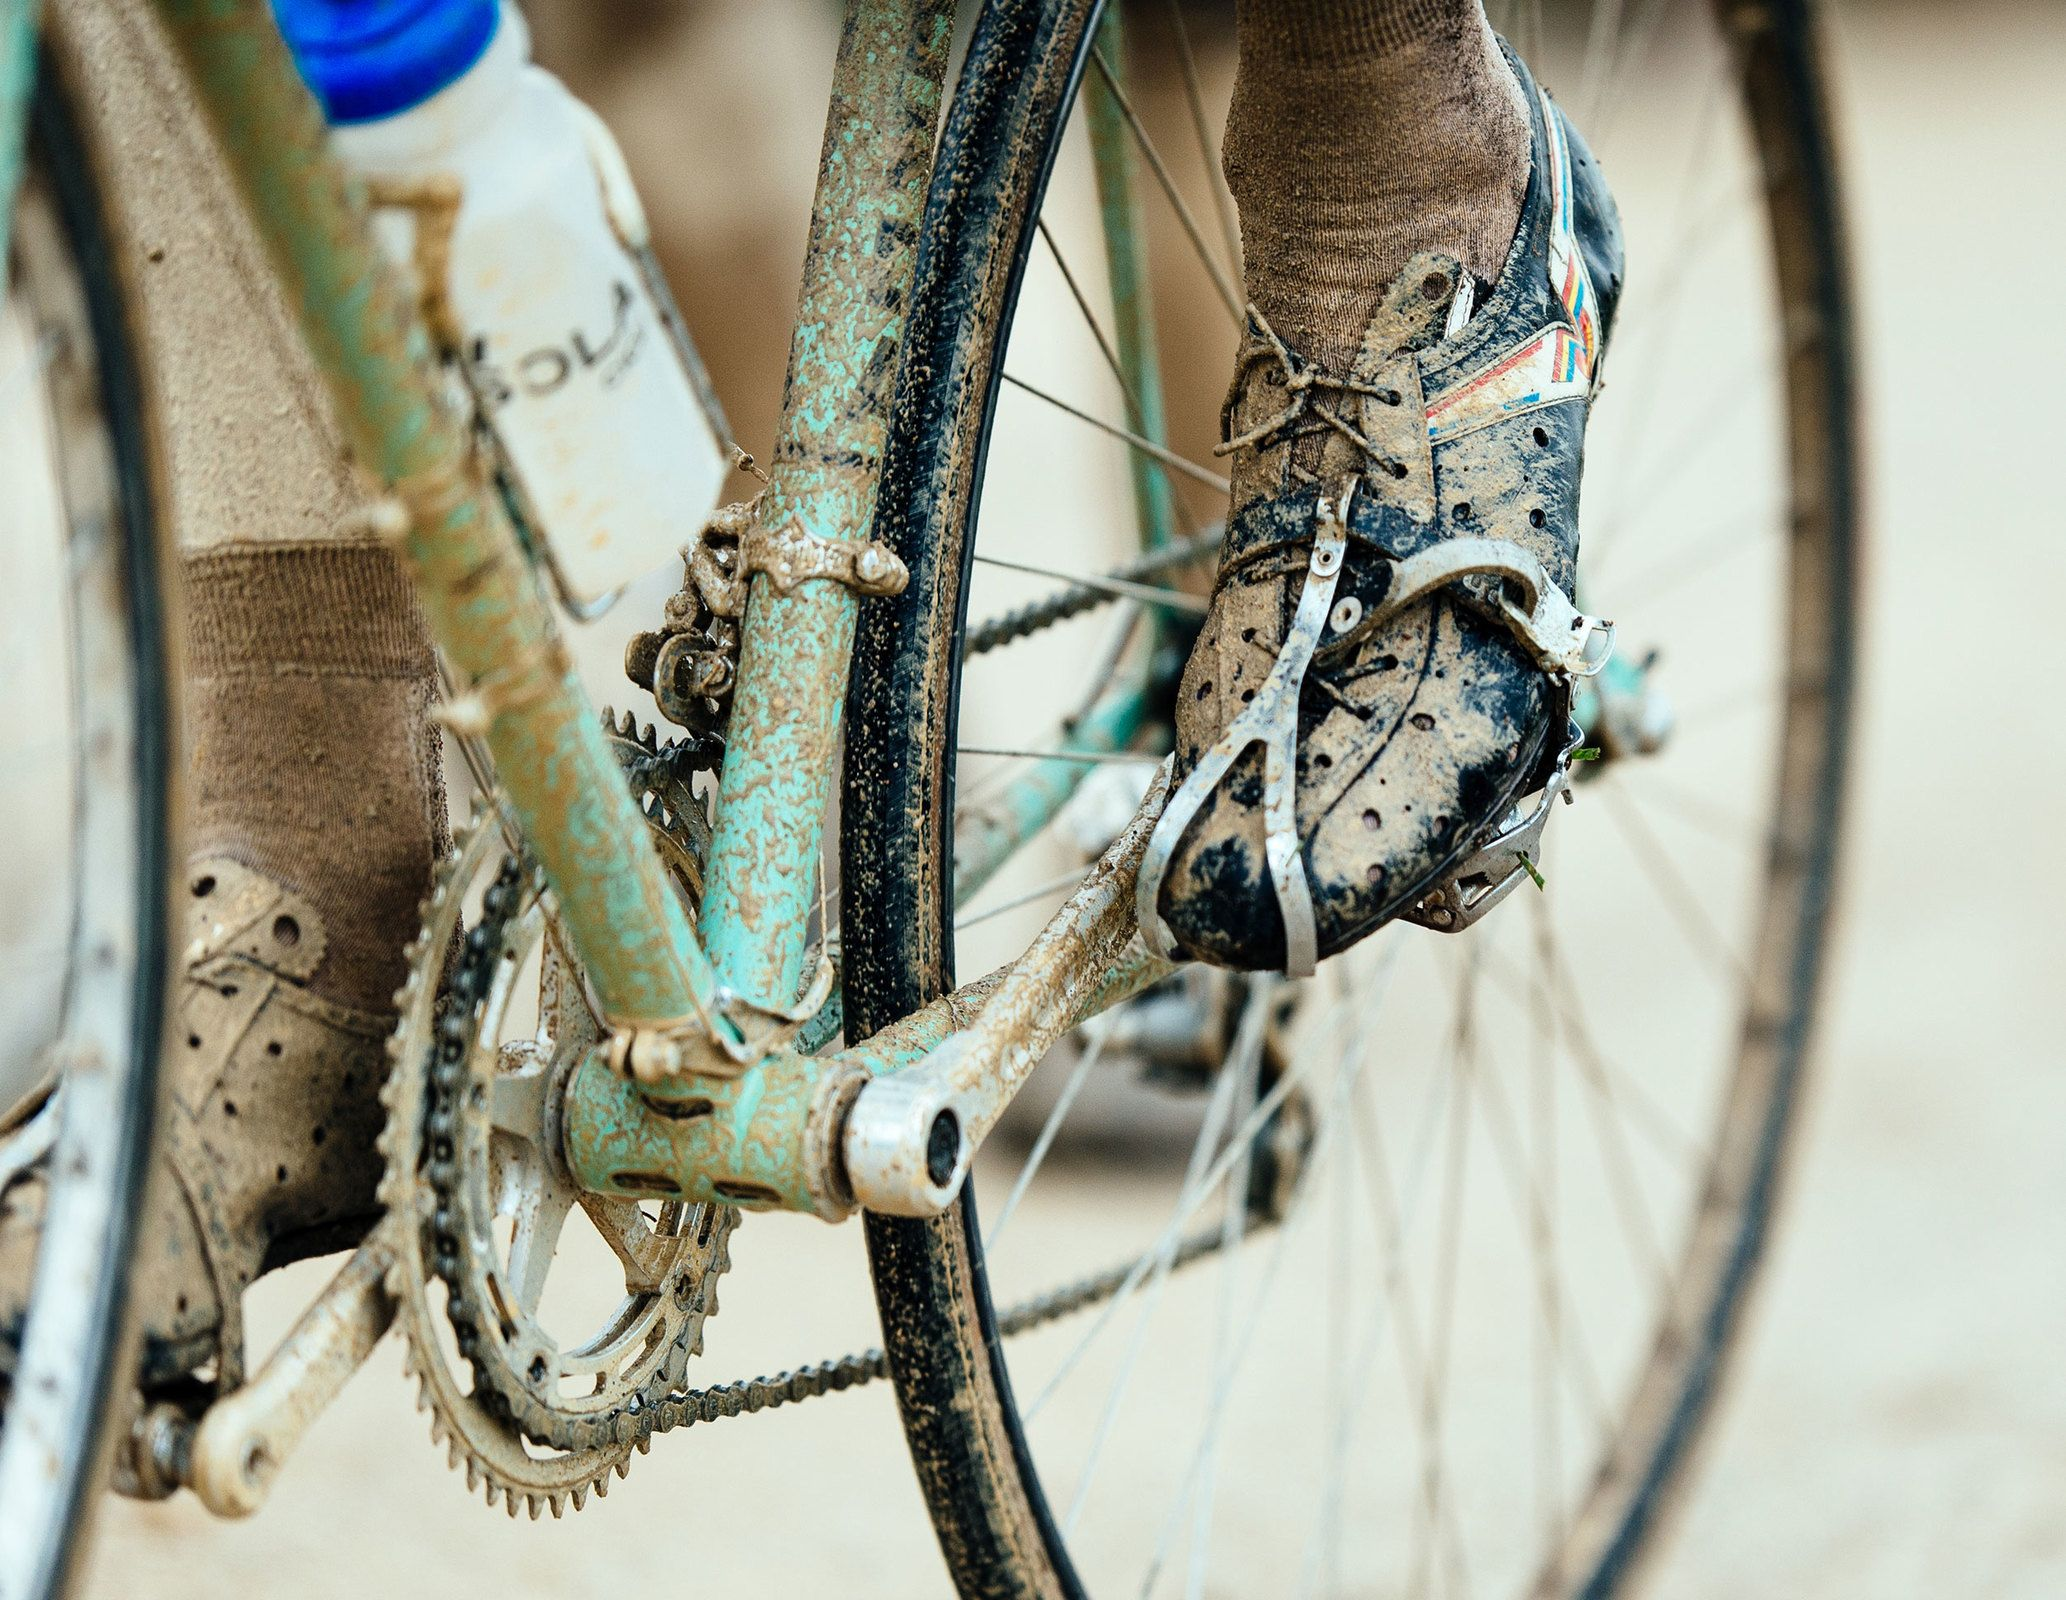 Unlike the vast majority of participants, when you're riding with inGamba you won't have to worry about the clean up. Our mechanics have you covered.